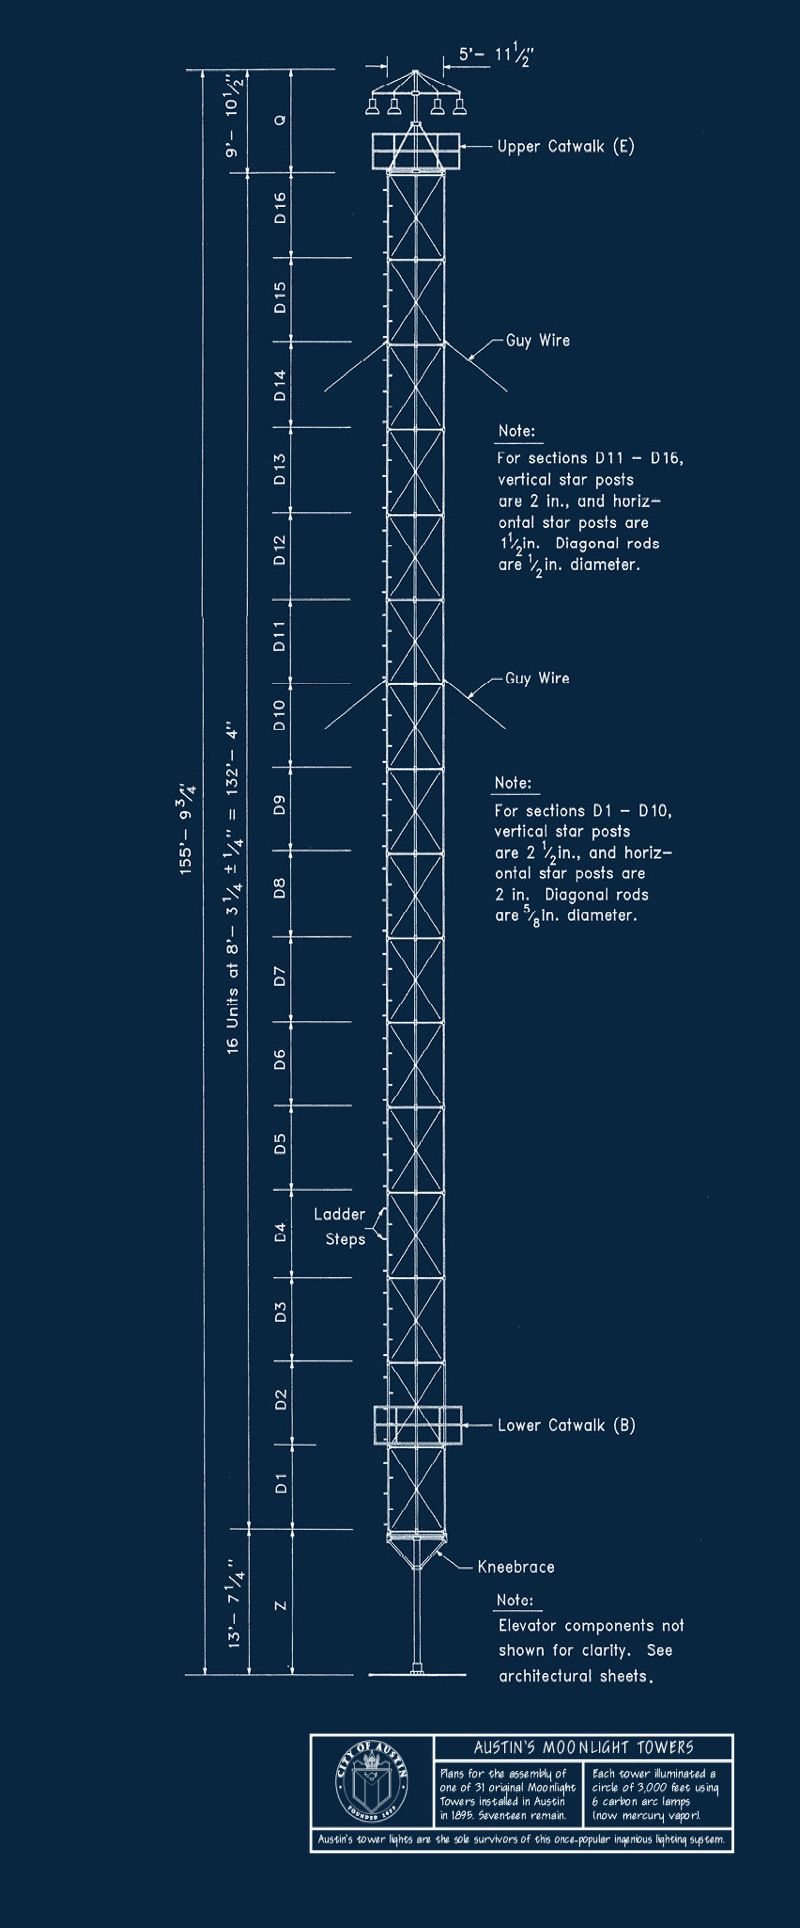 Austin texas is the only city in the world with moonlight towers austin texas is the only city in the world with moonlight towers their intricate blueprints are now available as stunning pieces of art malvernweather Choice Image